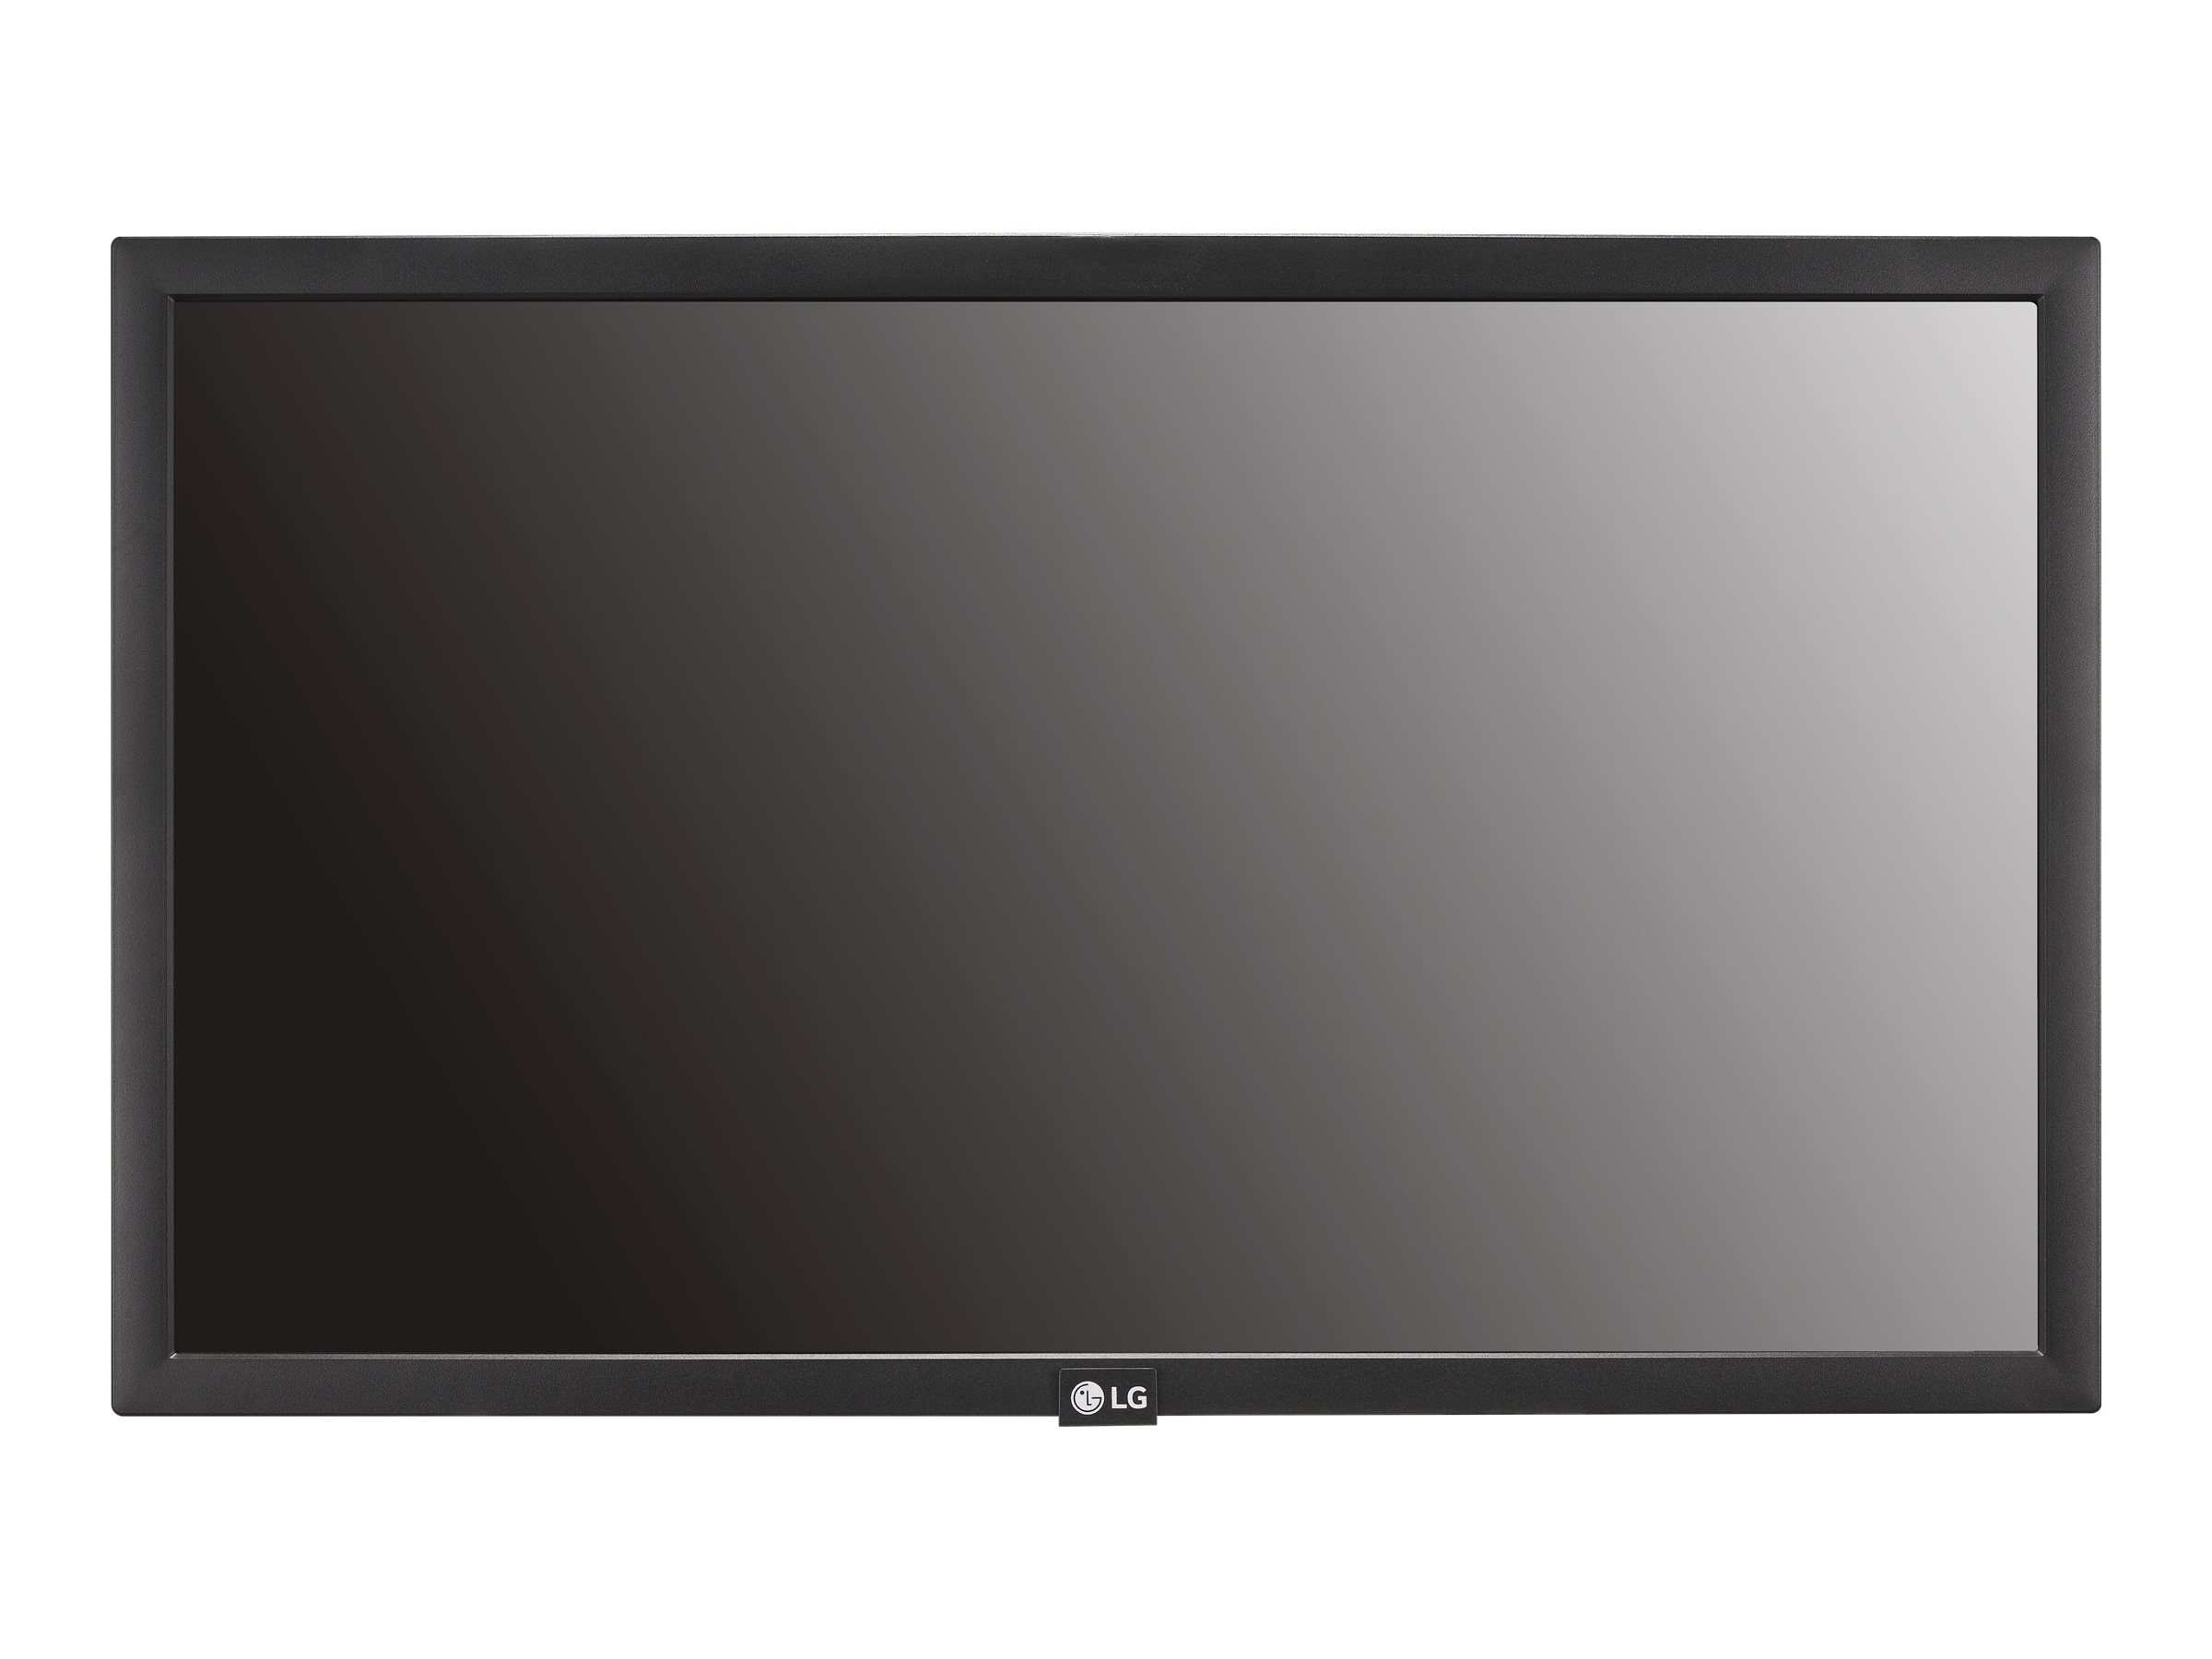 LG 22 SM3B-B Full HD LED-LCD Display, Black, 22SM3B-B